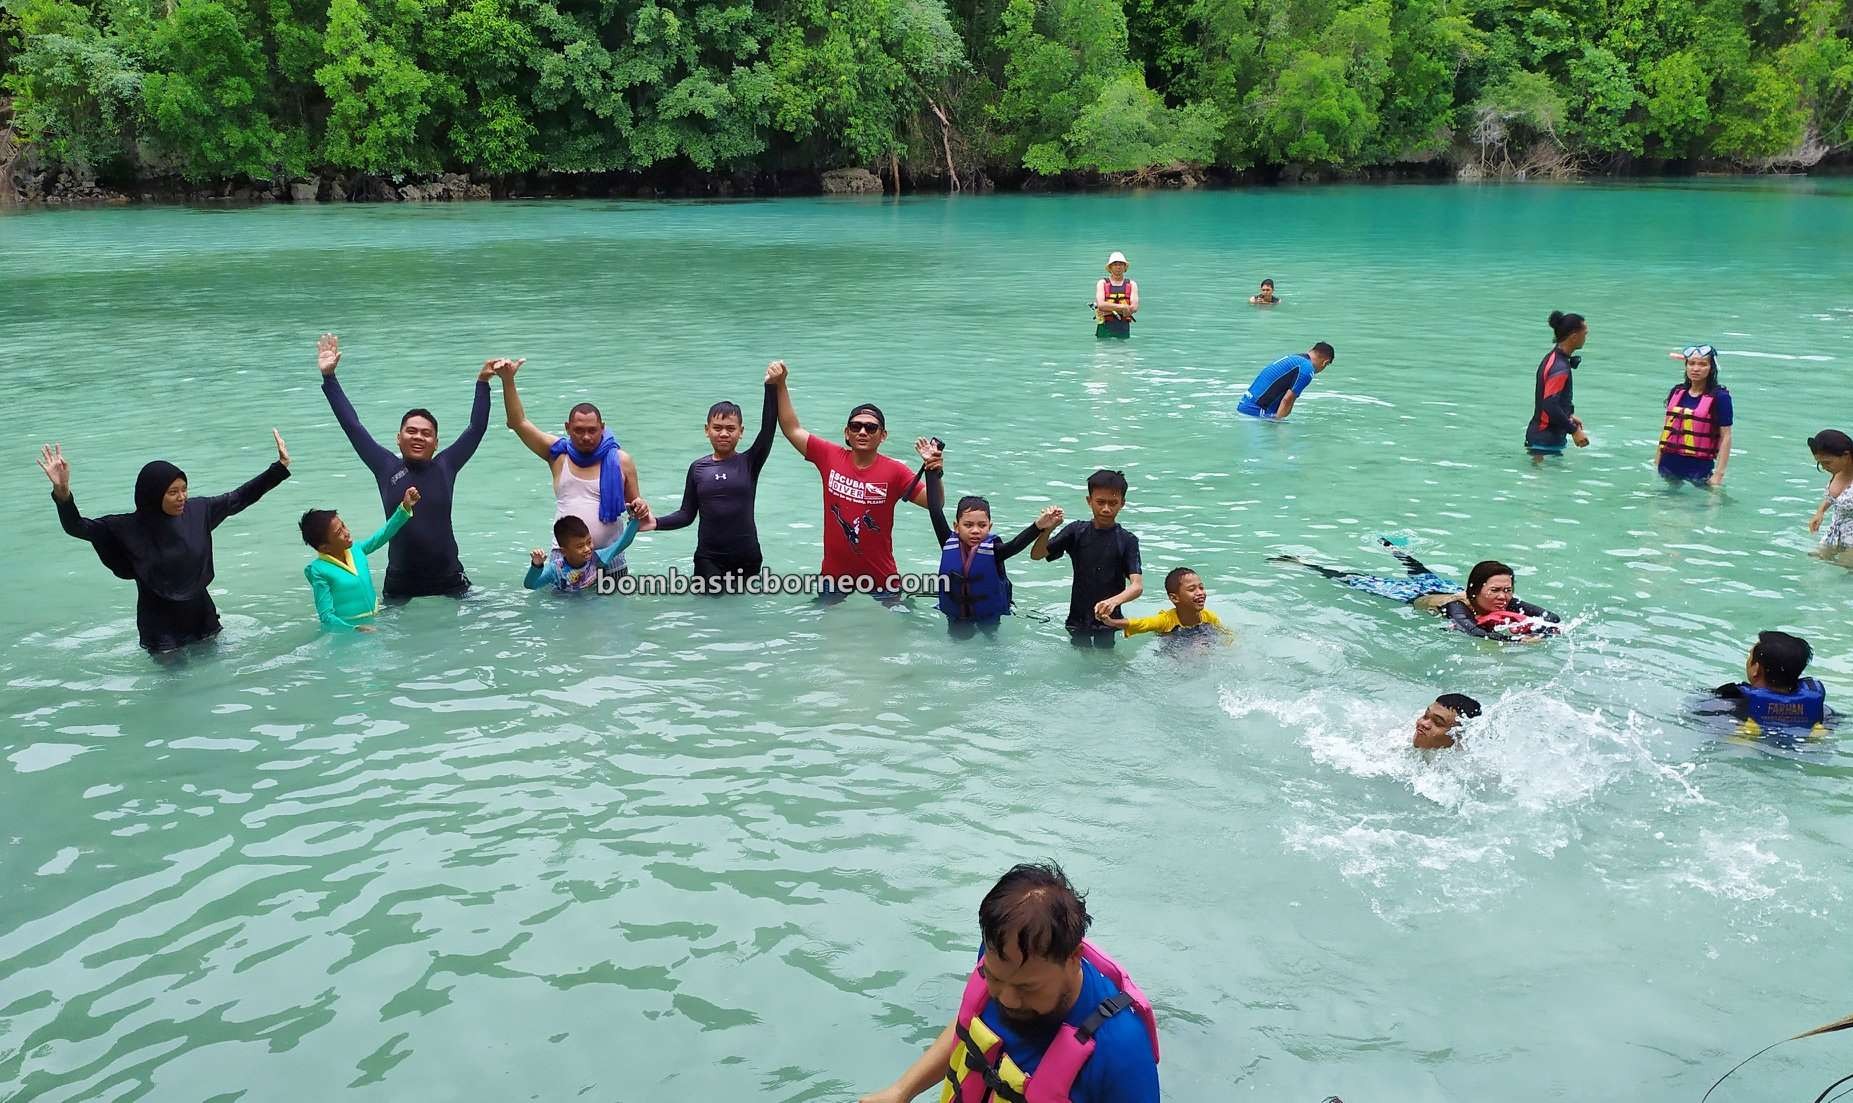 Emerald Pool, Laguna Kehe Daing, Lagoon, Lobang Ikan, Kakaban Island, nature, destination, hidden paradise, Vacation, Kalimantan Timur, Pesona Indonesia, Objek wisata, Tourism, travel guide, Borneo,